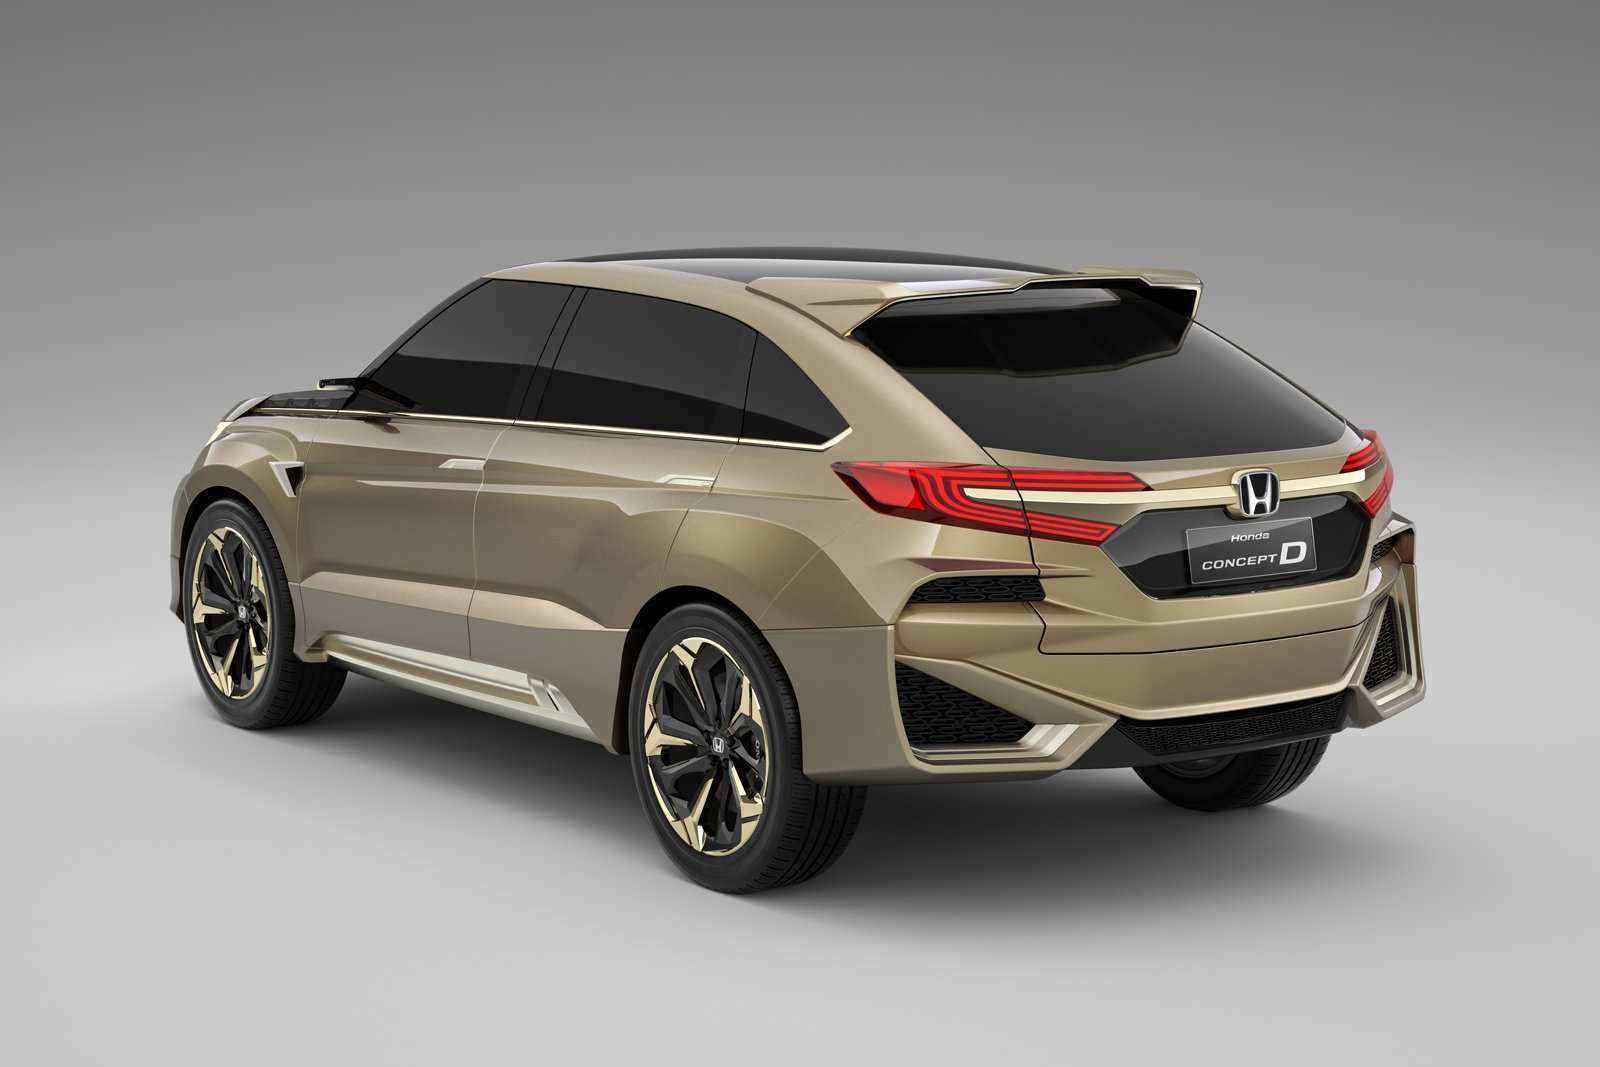 57 The 2020 Acura Mdx Spy Shots Redesign And Concept